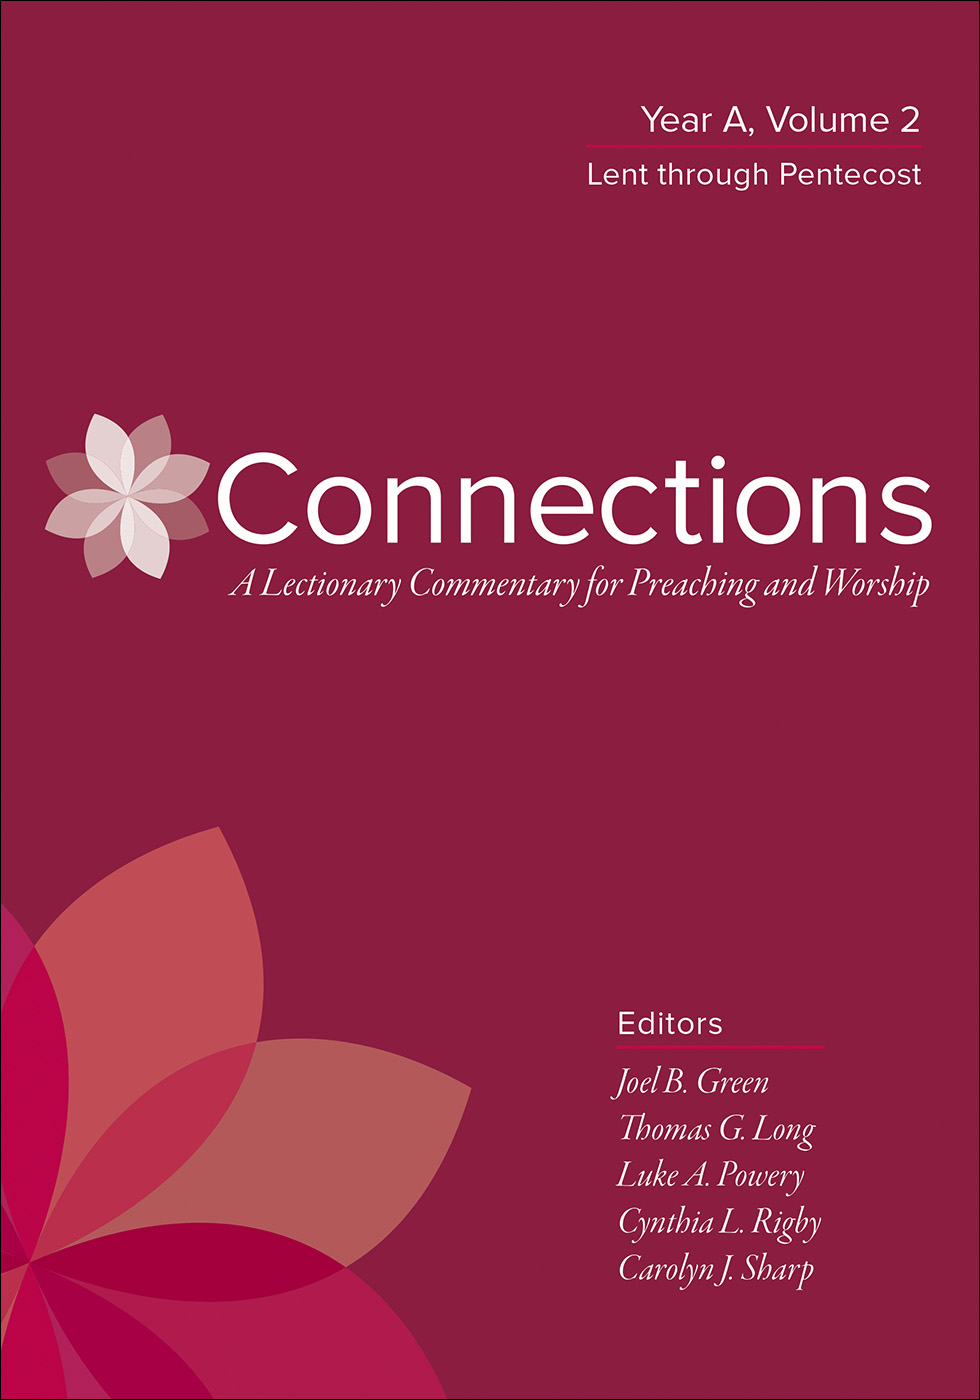 Connections: Year A, Volume 2